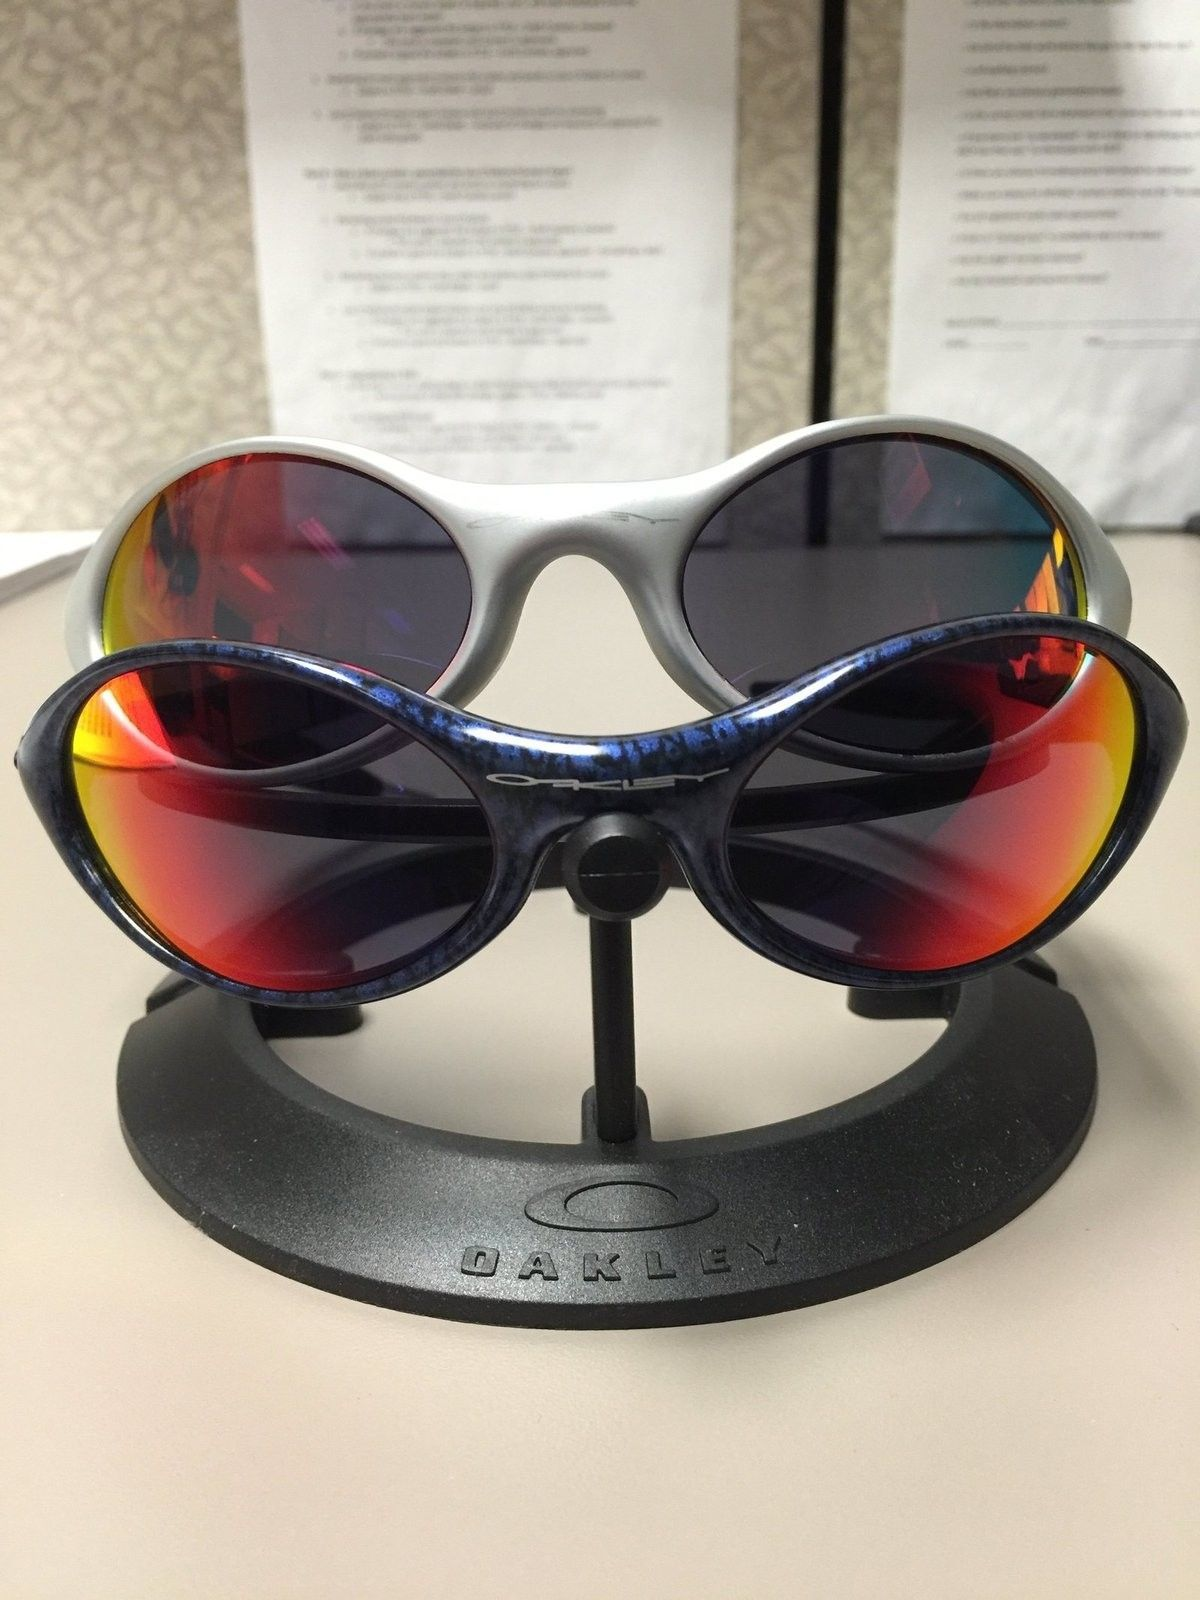 Custom cut EJ lenses by Chris A Hardaway - image.jpeg